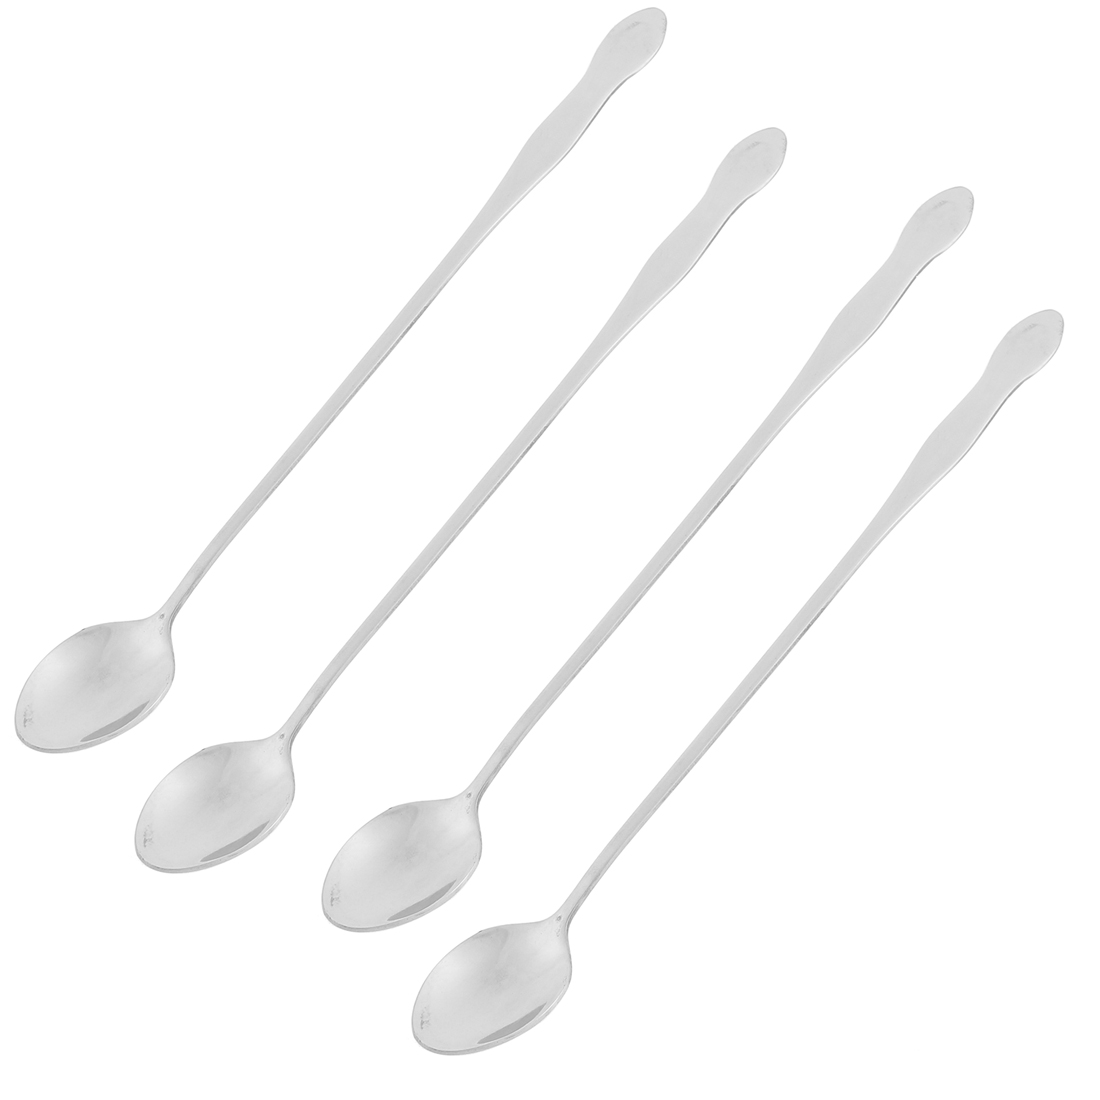 Stainless Steel Long Handle Tea Coffee Ice Cream Spoon Silver Tone 4pcs